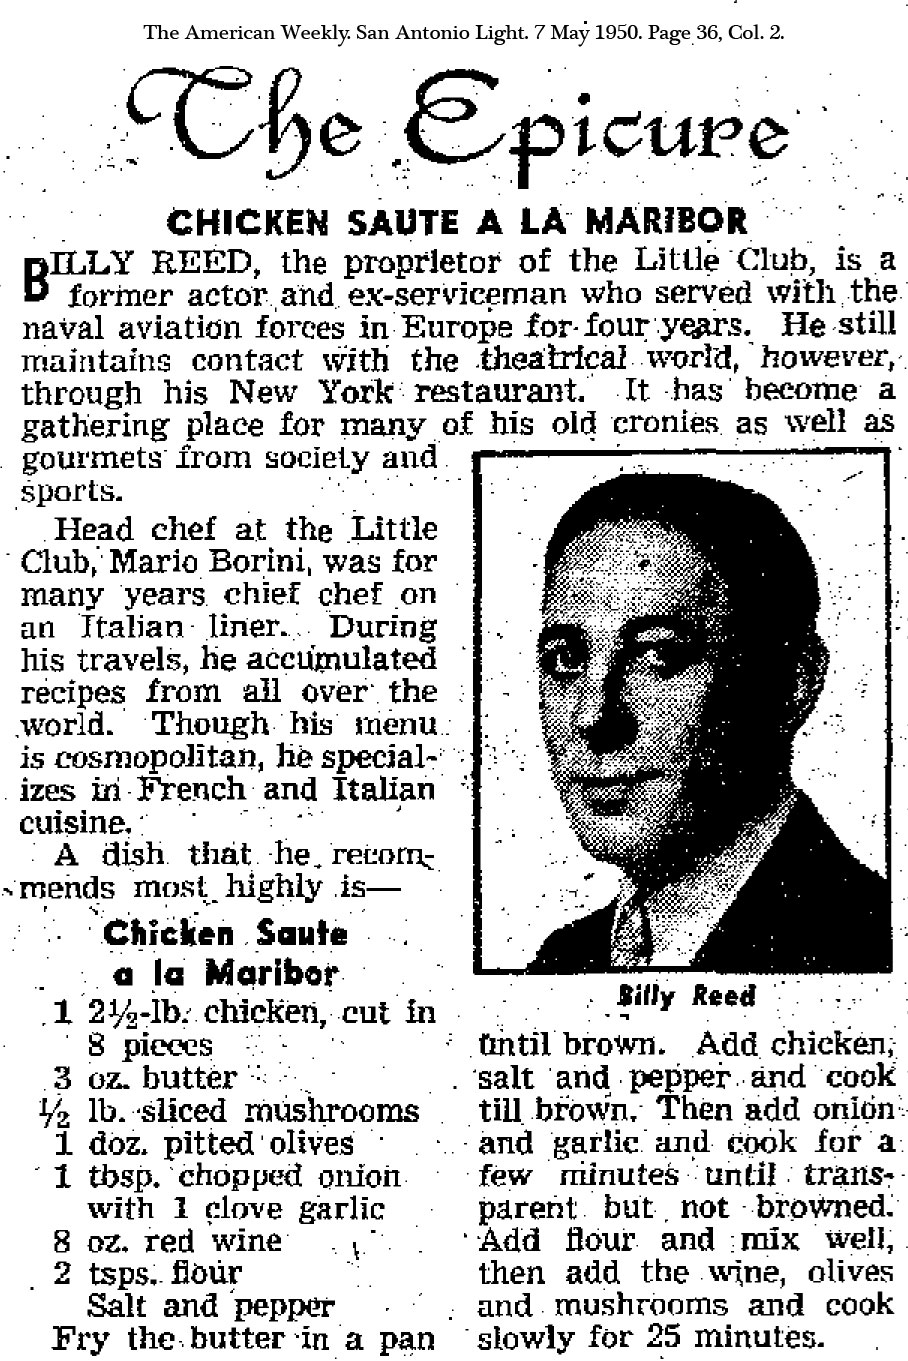 Recipe for Chicken Sauté a la Maribor showing photo of Billy Reed